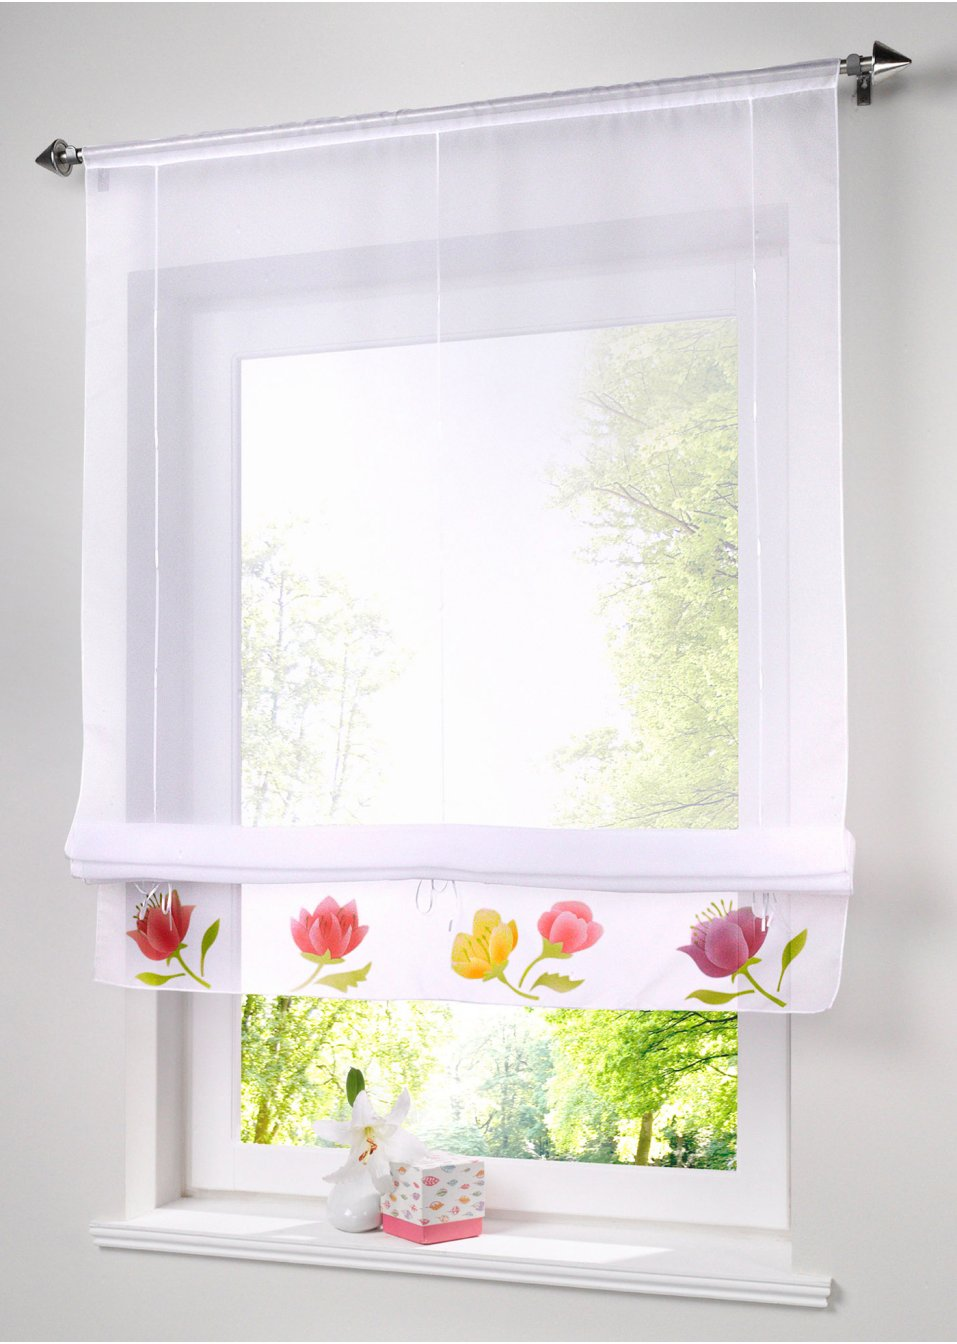 handmade roman blinds can lift window screening,voile kitchen/cafe/door/window curtains,floral decorate curtain